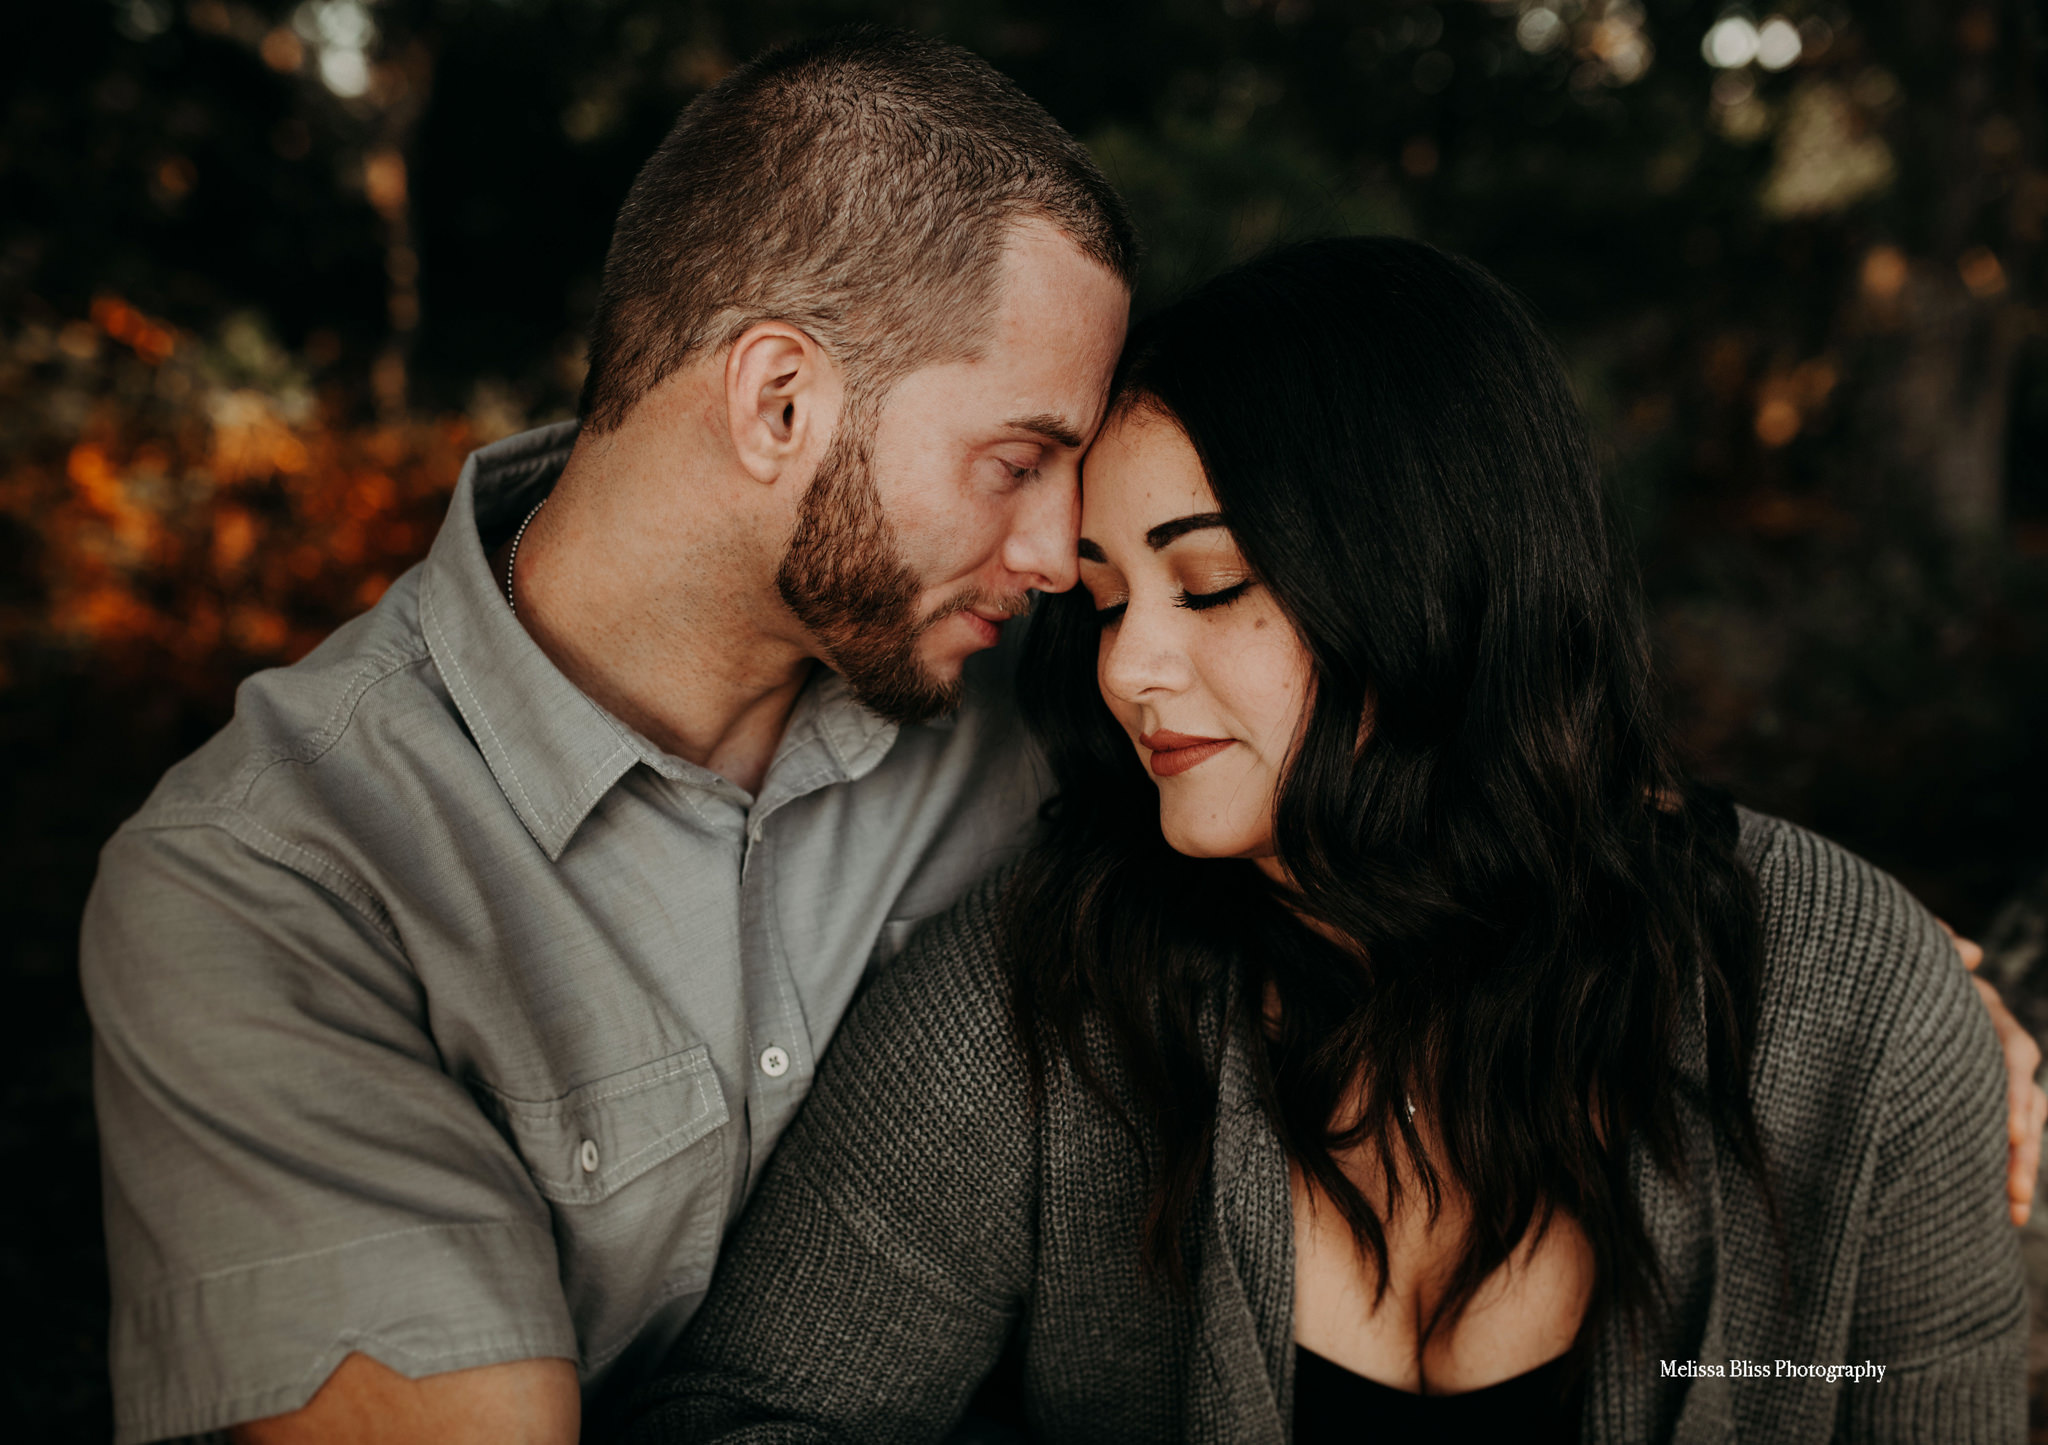 norfolk-engagement-photographer-intimate-engagement-pictures-creative-photography-by-melissa-bliss-photography-va-wedding-photographer-destination-wedding-photographer-portsmouth-williamsburg-richmond.jpg